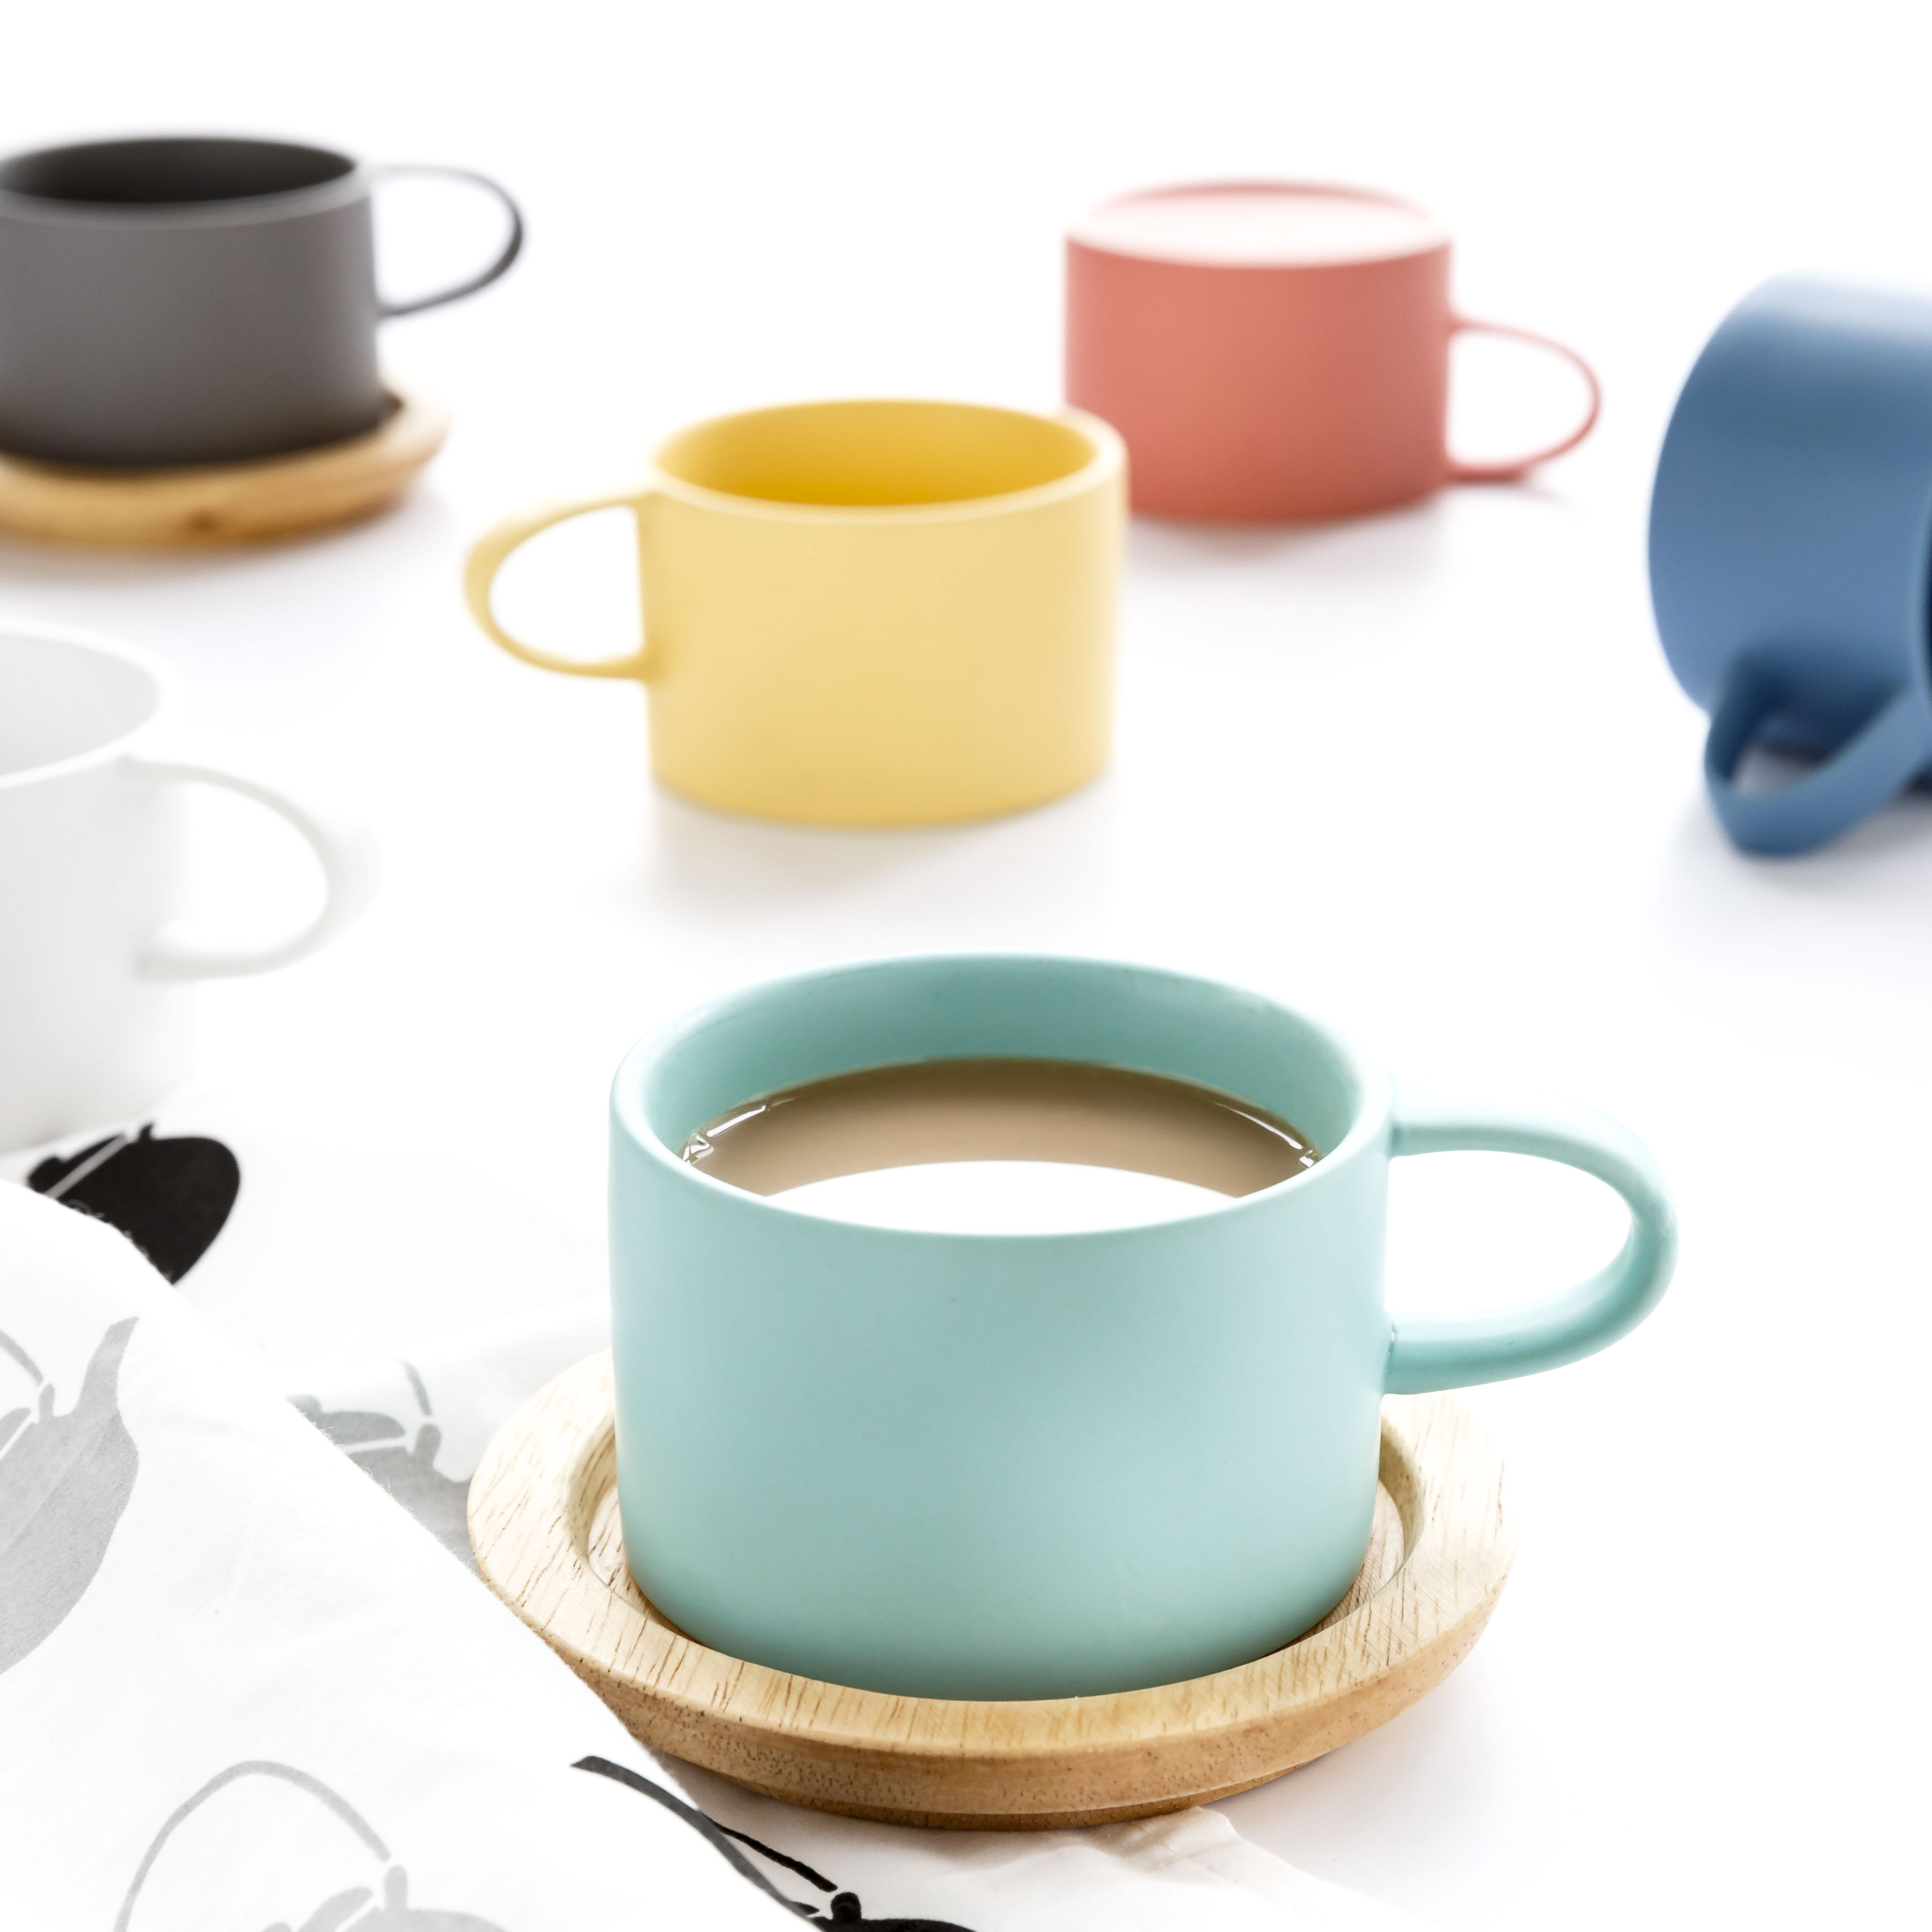 Candy Colors Ceramic Mugs Coffee Milk Breakfast Cups Porcelain Tea Water Mugs with cover&spoon Novetly Gifts